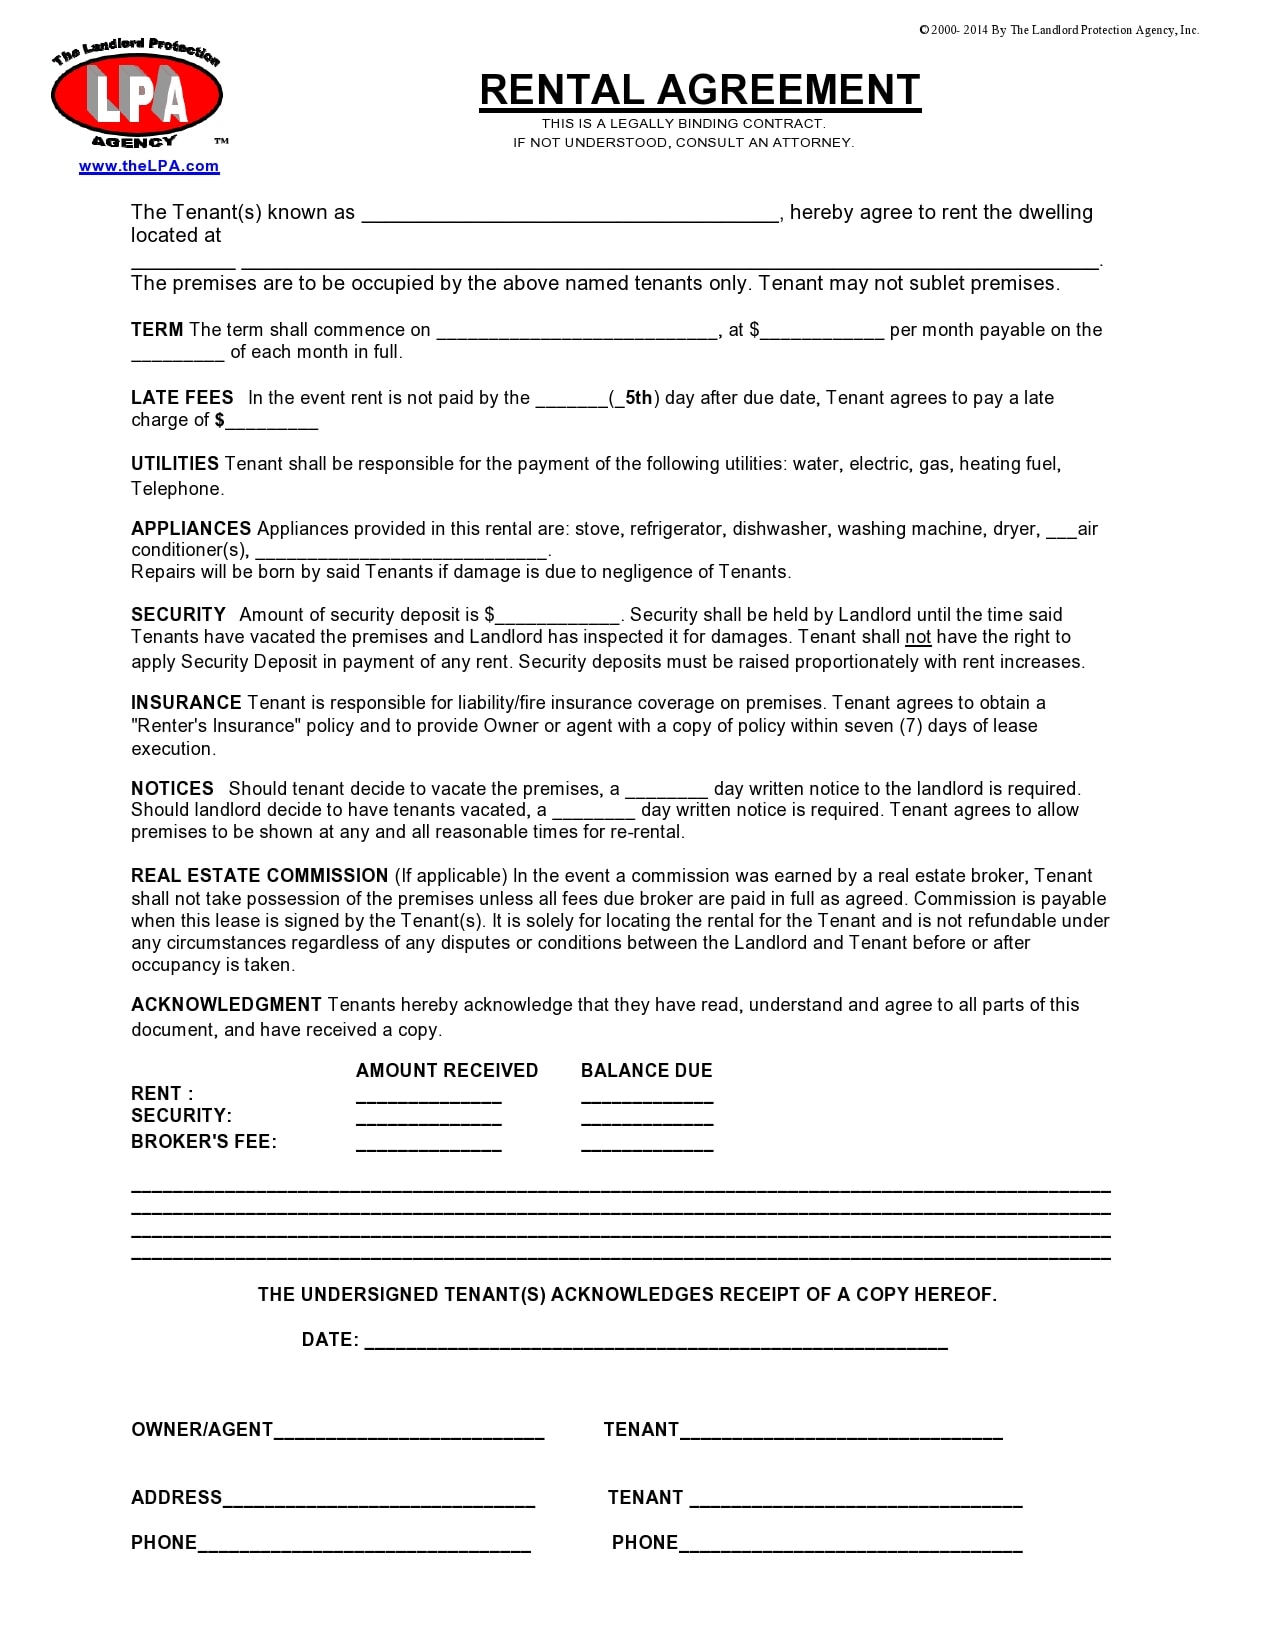 simple one page rental agreement 03